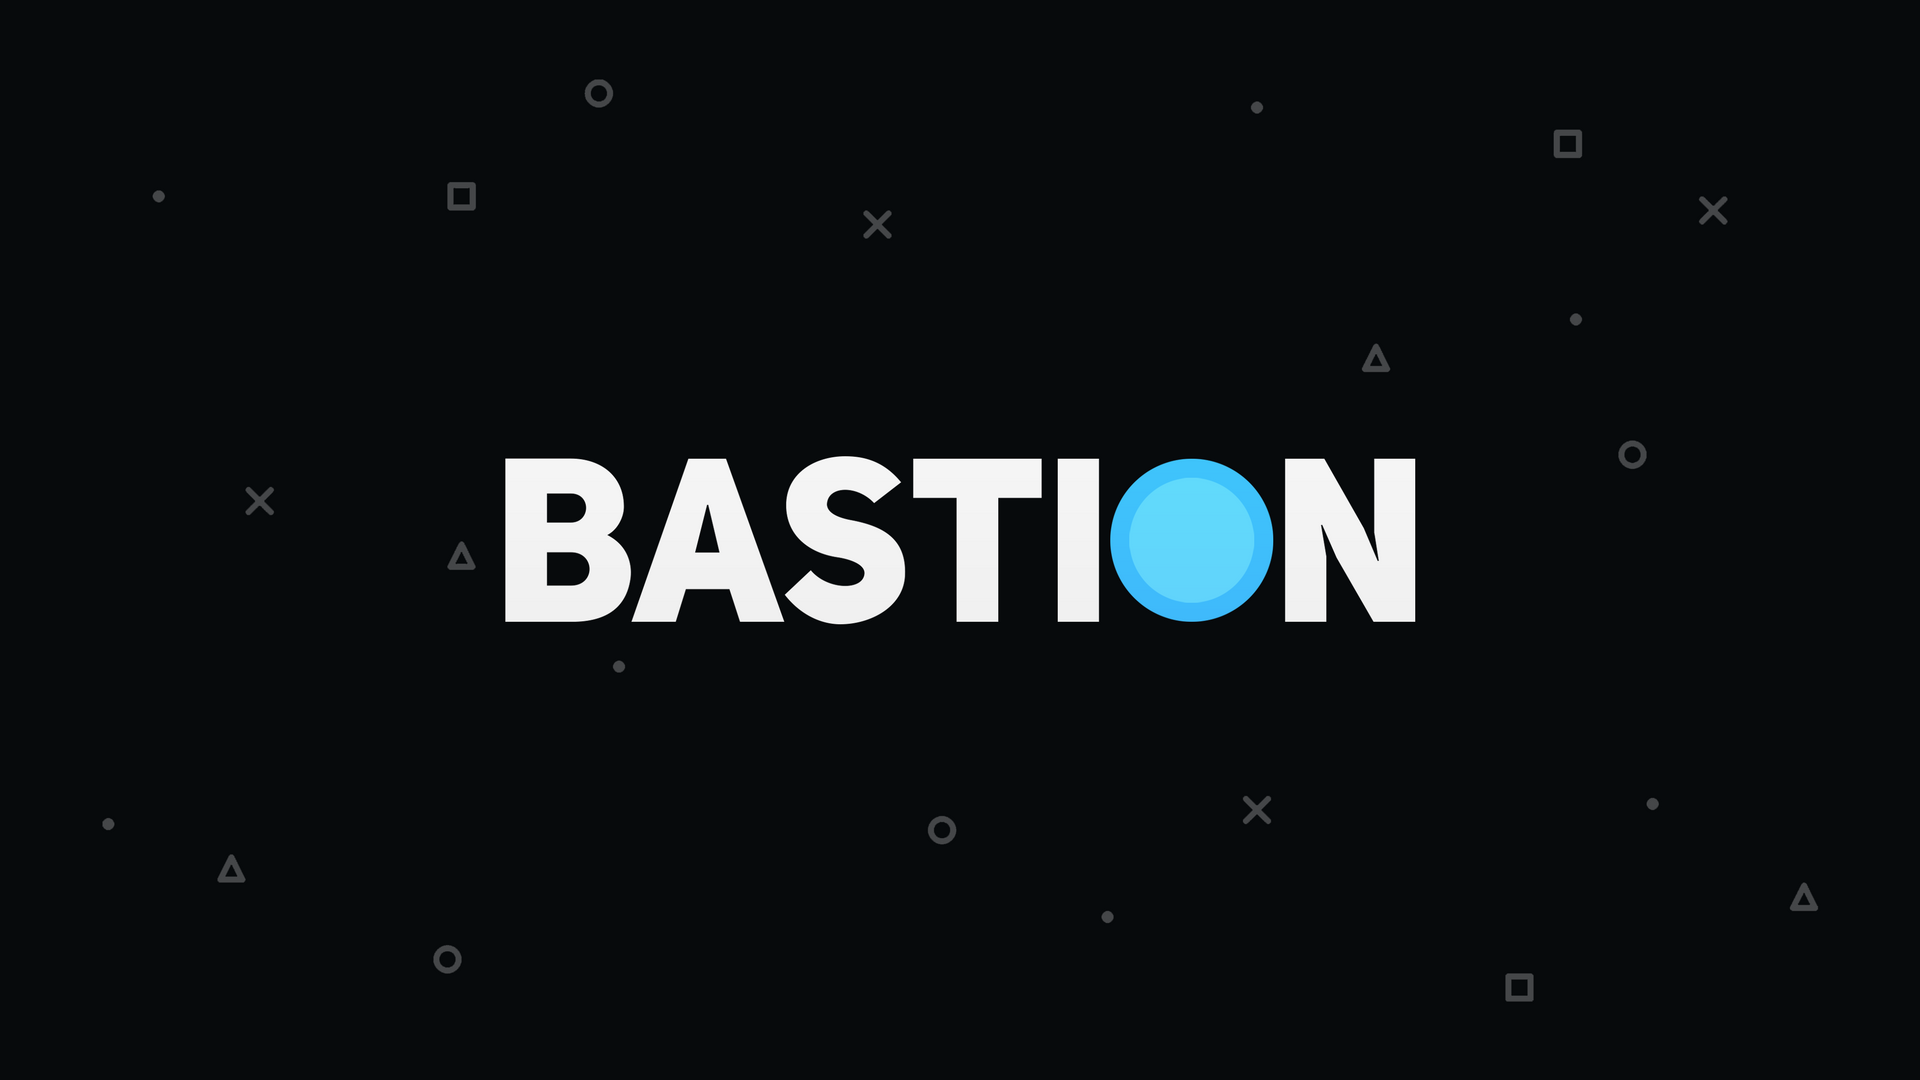 GitHub - TheBastionBot/Bastion: 🚀 Give awesome perks to your